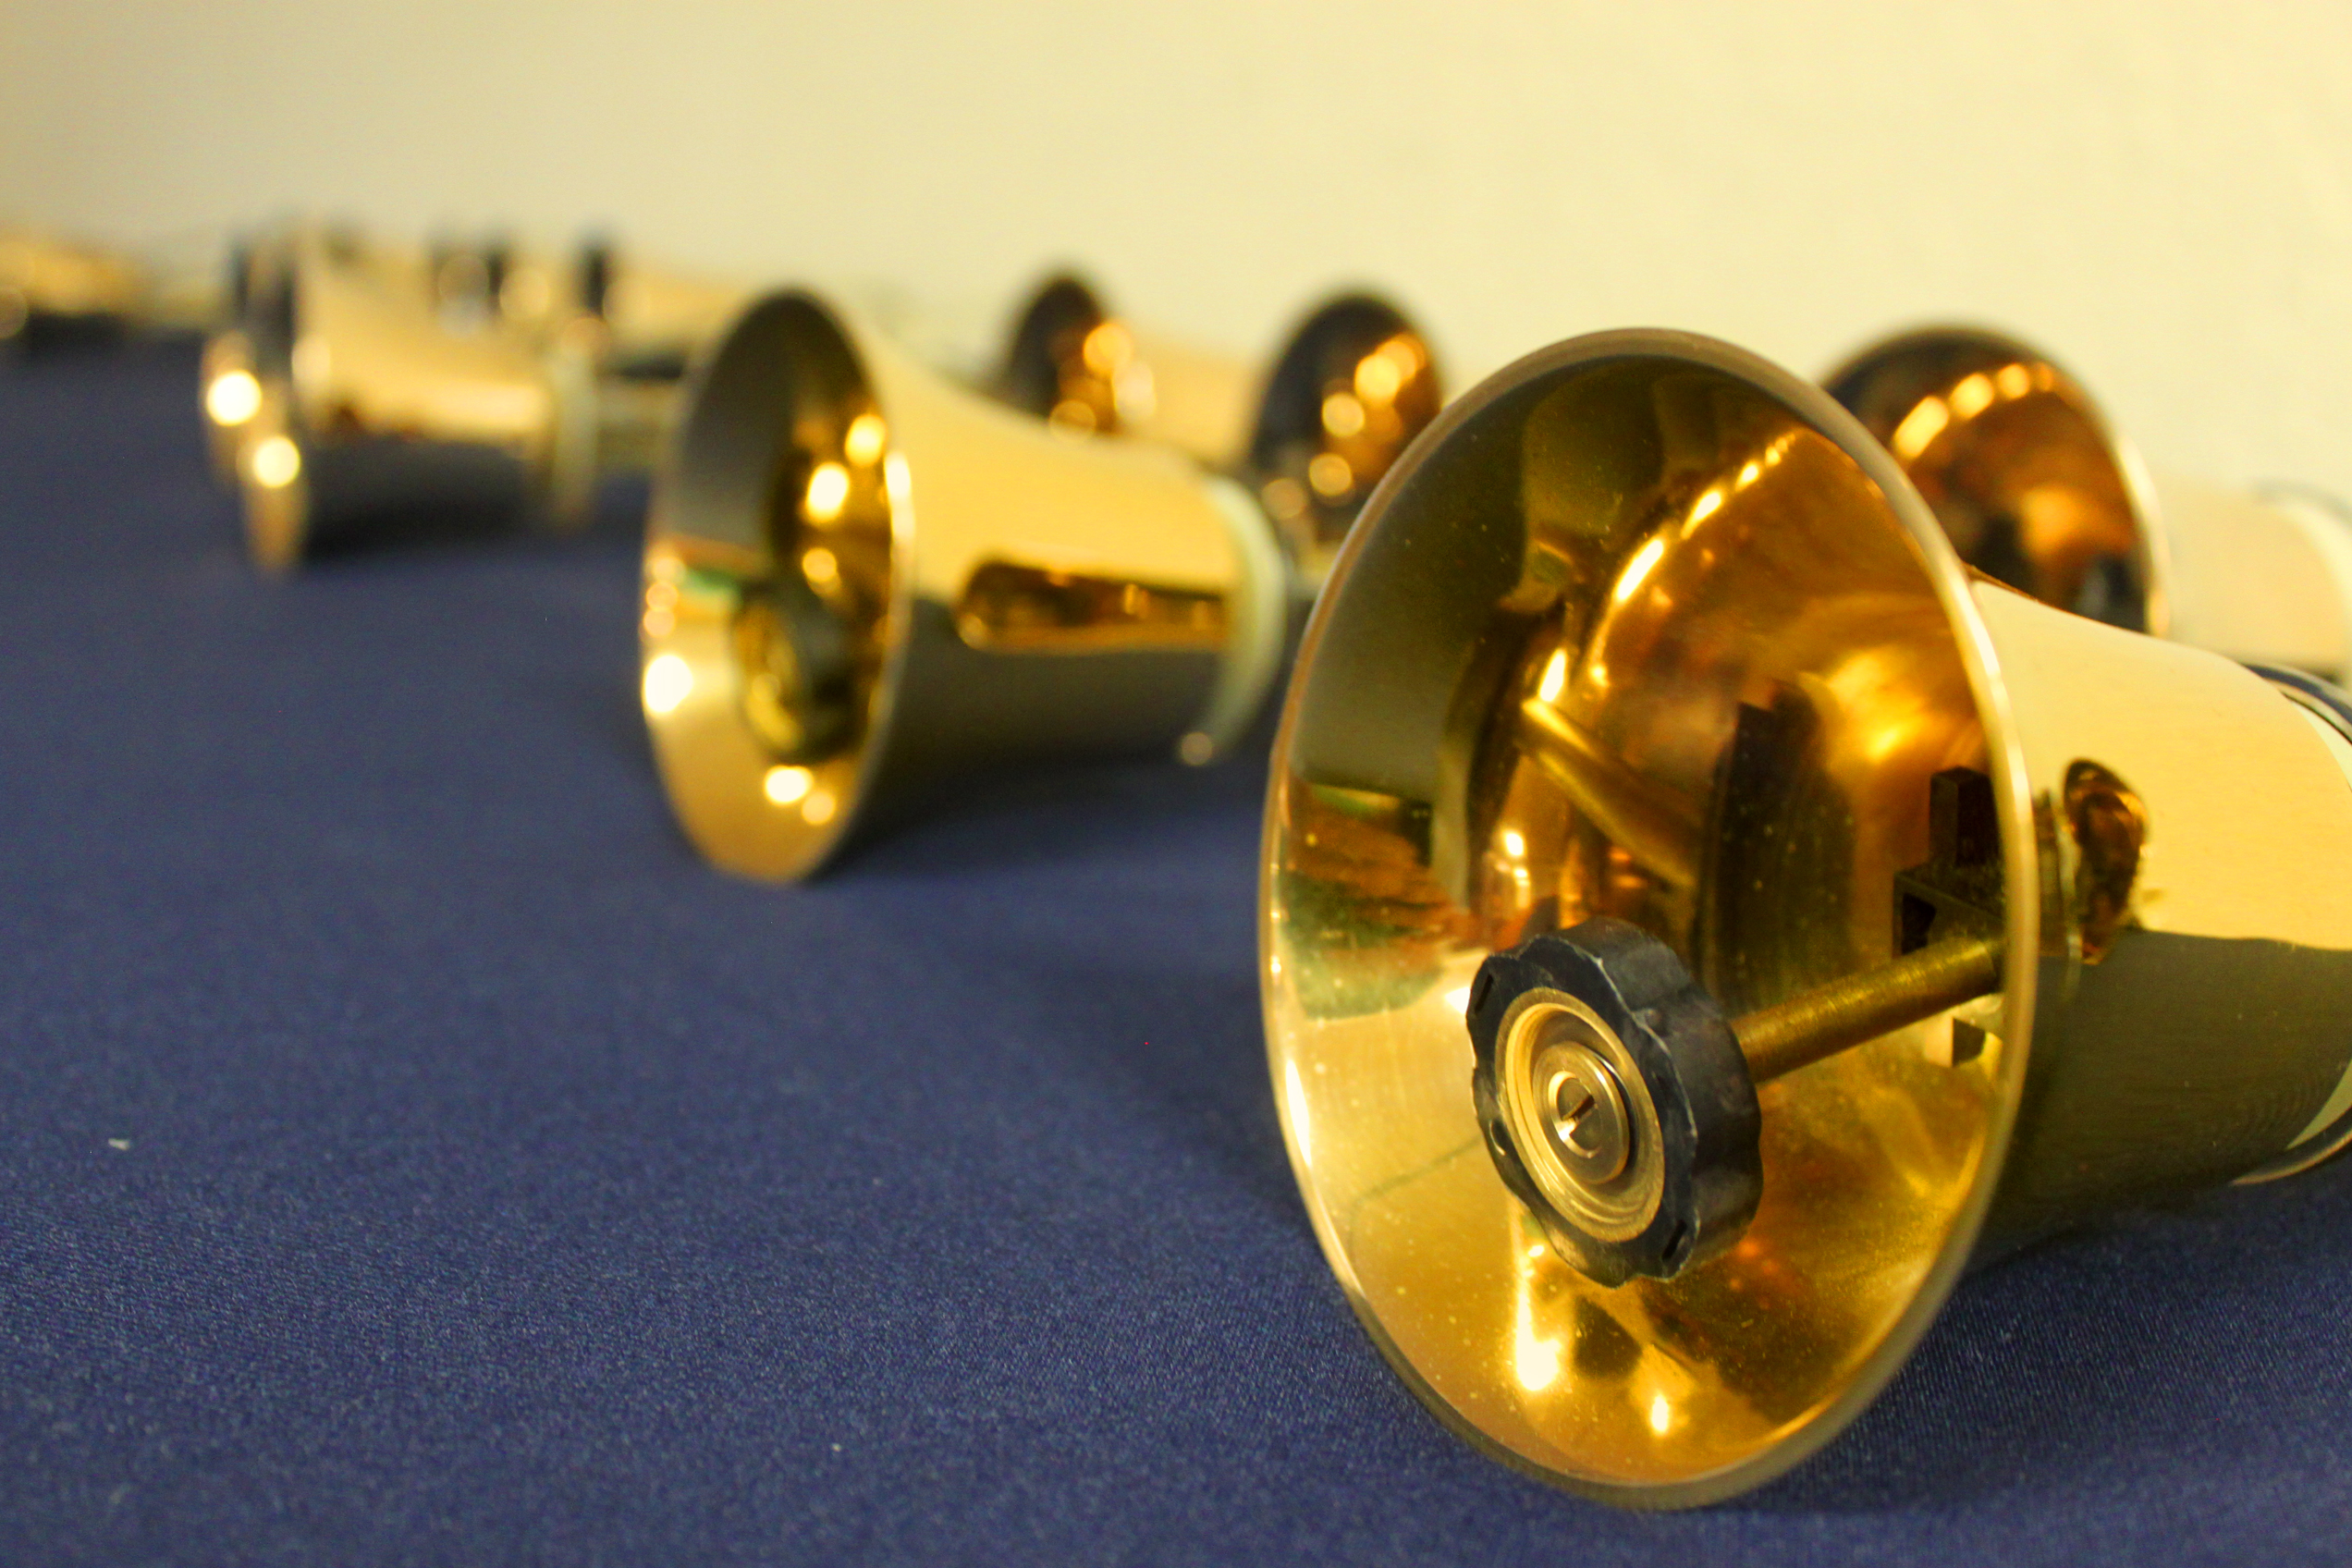 Golden bells at a church, Bell, Season, New, Object, HQ Photo